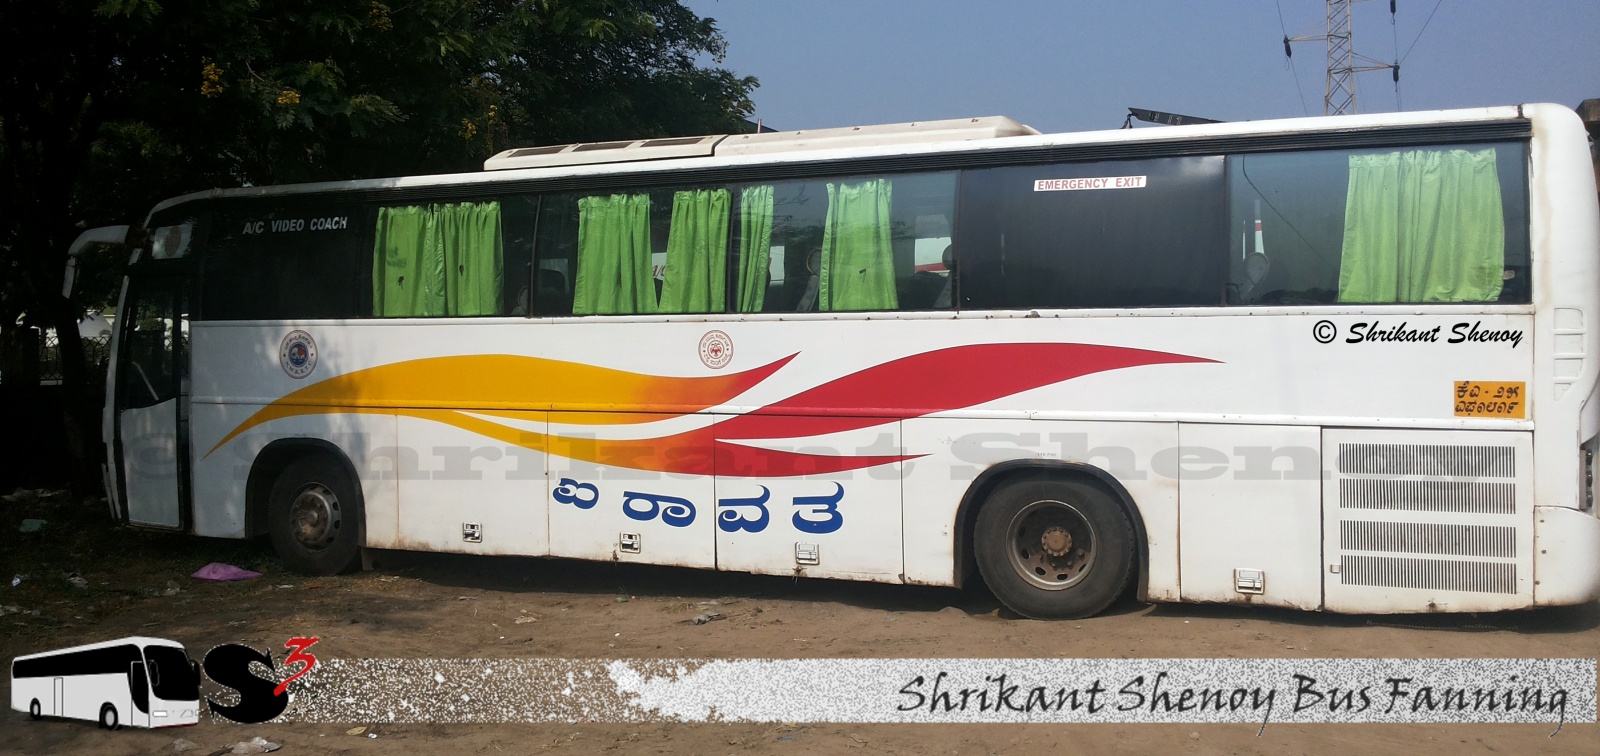 Volvo B9r Page 2311 India Travel Forum Bcmtouring